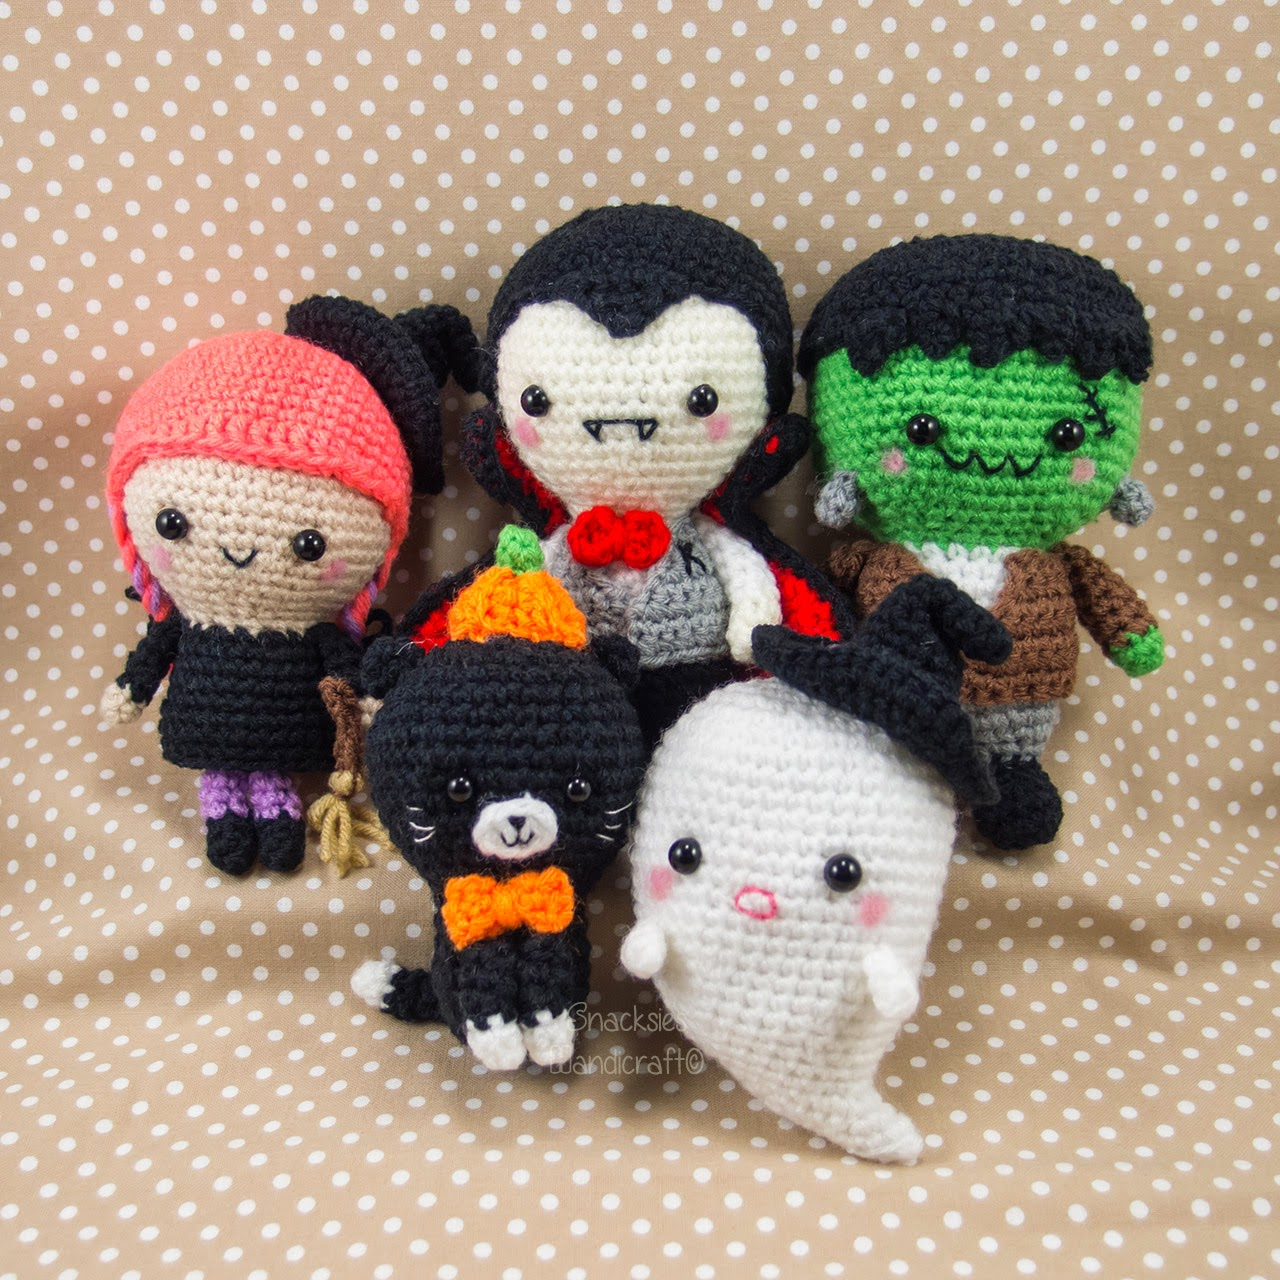 Free Amigurumi Patterns Halloween : Halloween Set ~ Snacksies Handicraft Corner